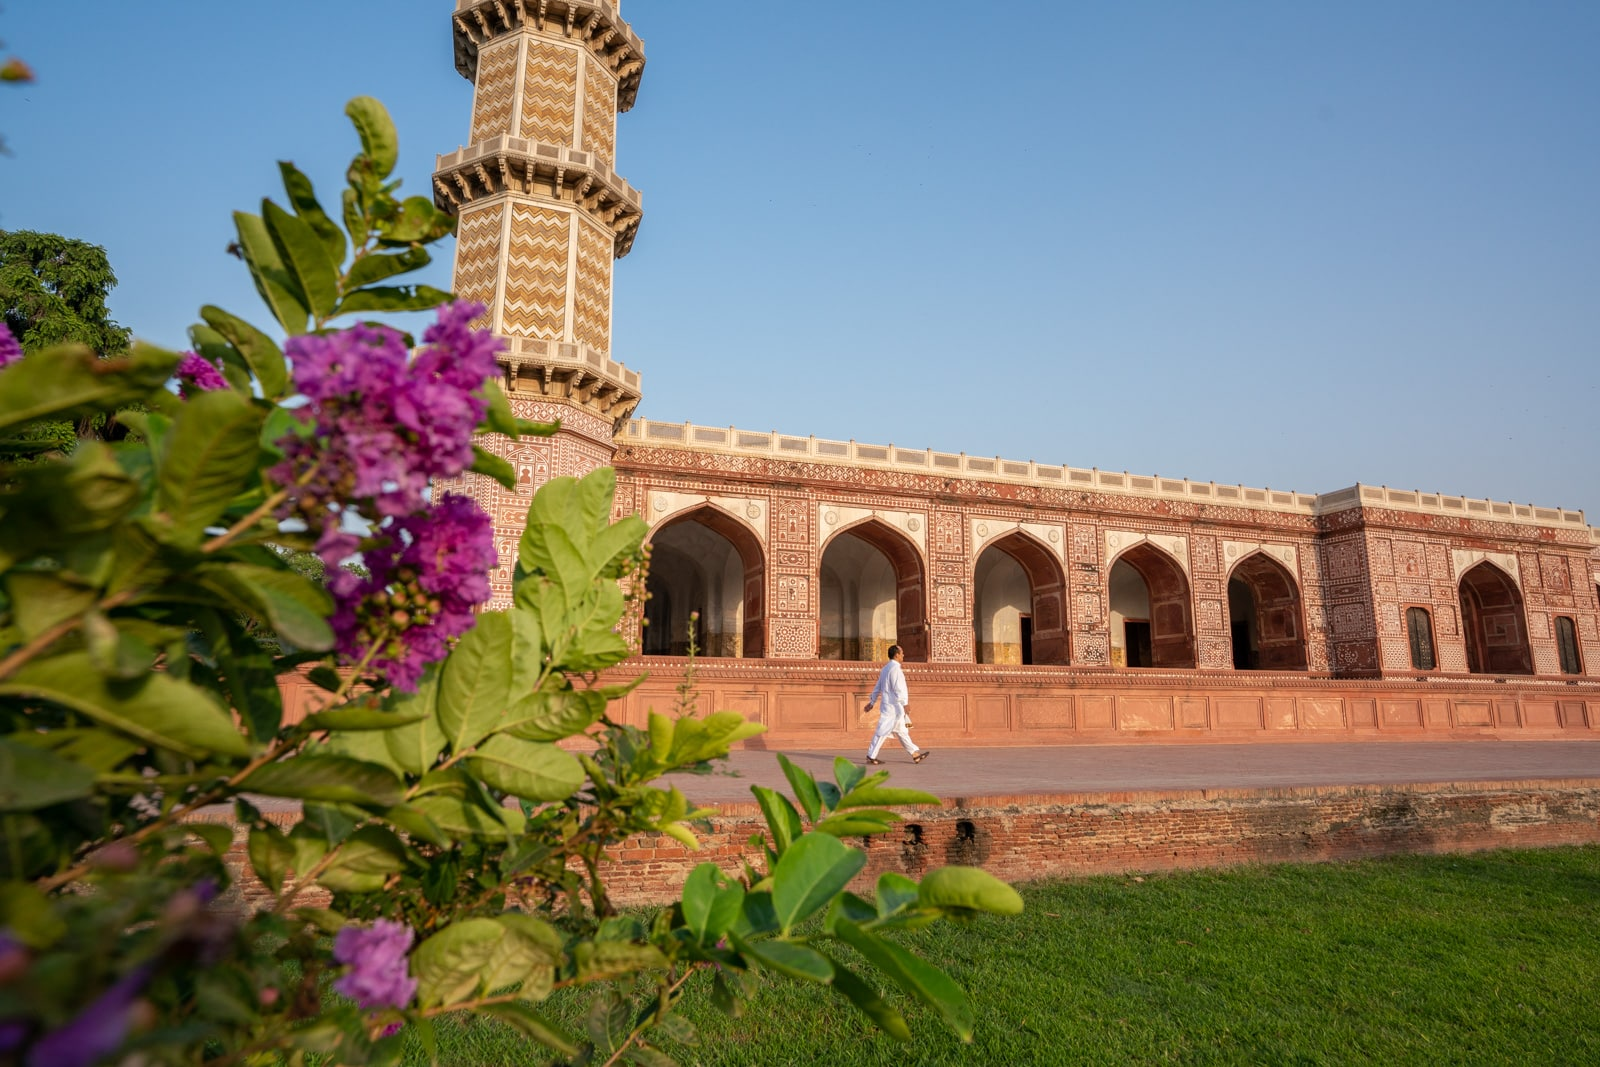 Day trips from Lahore, Pakistan - Man in a white salwar kameez walking at Jahangir's Tomb on the outskirts of Lahore